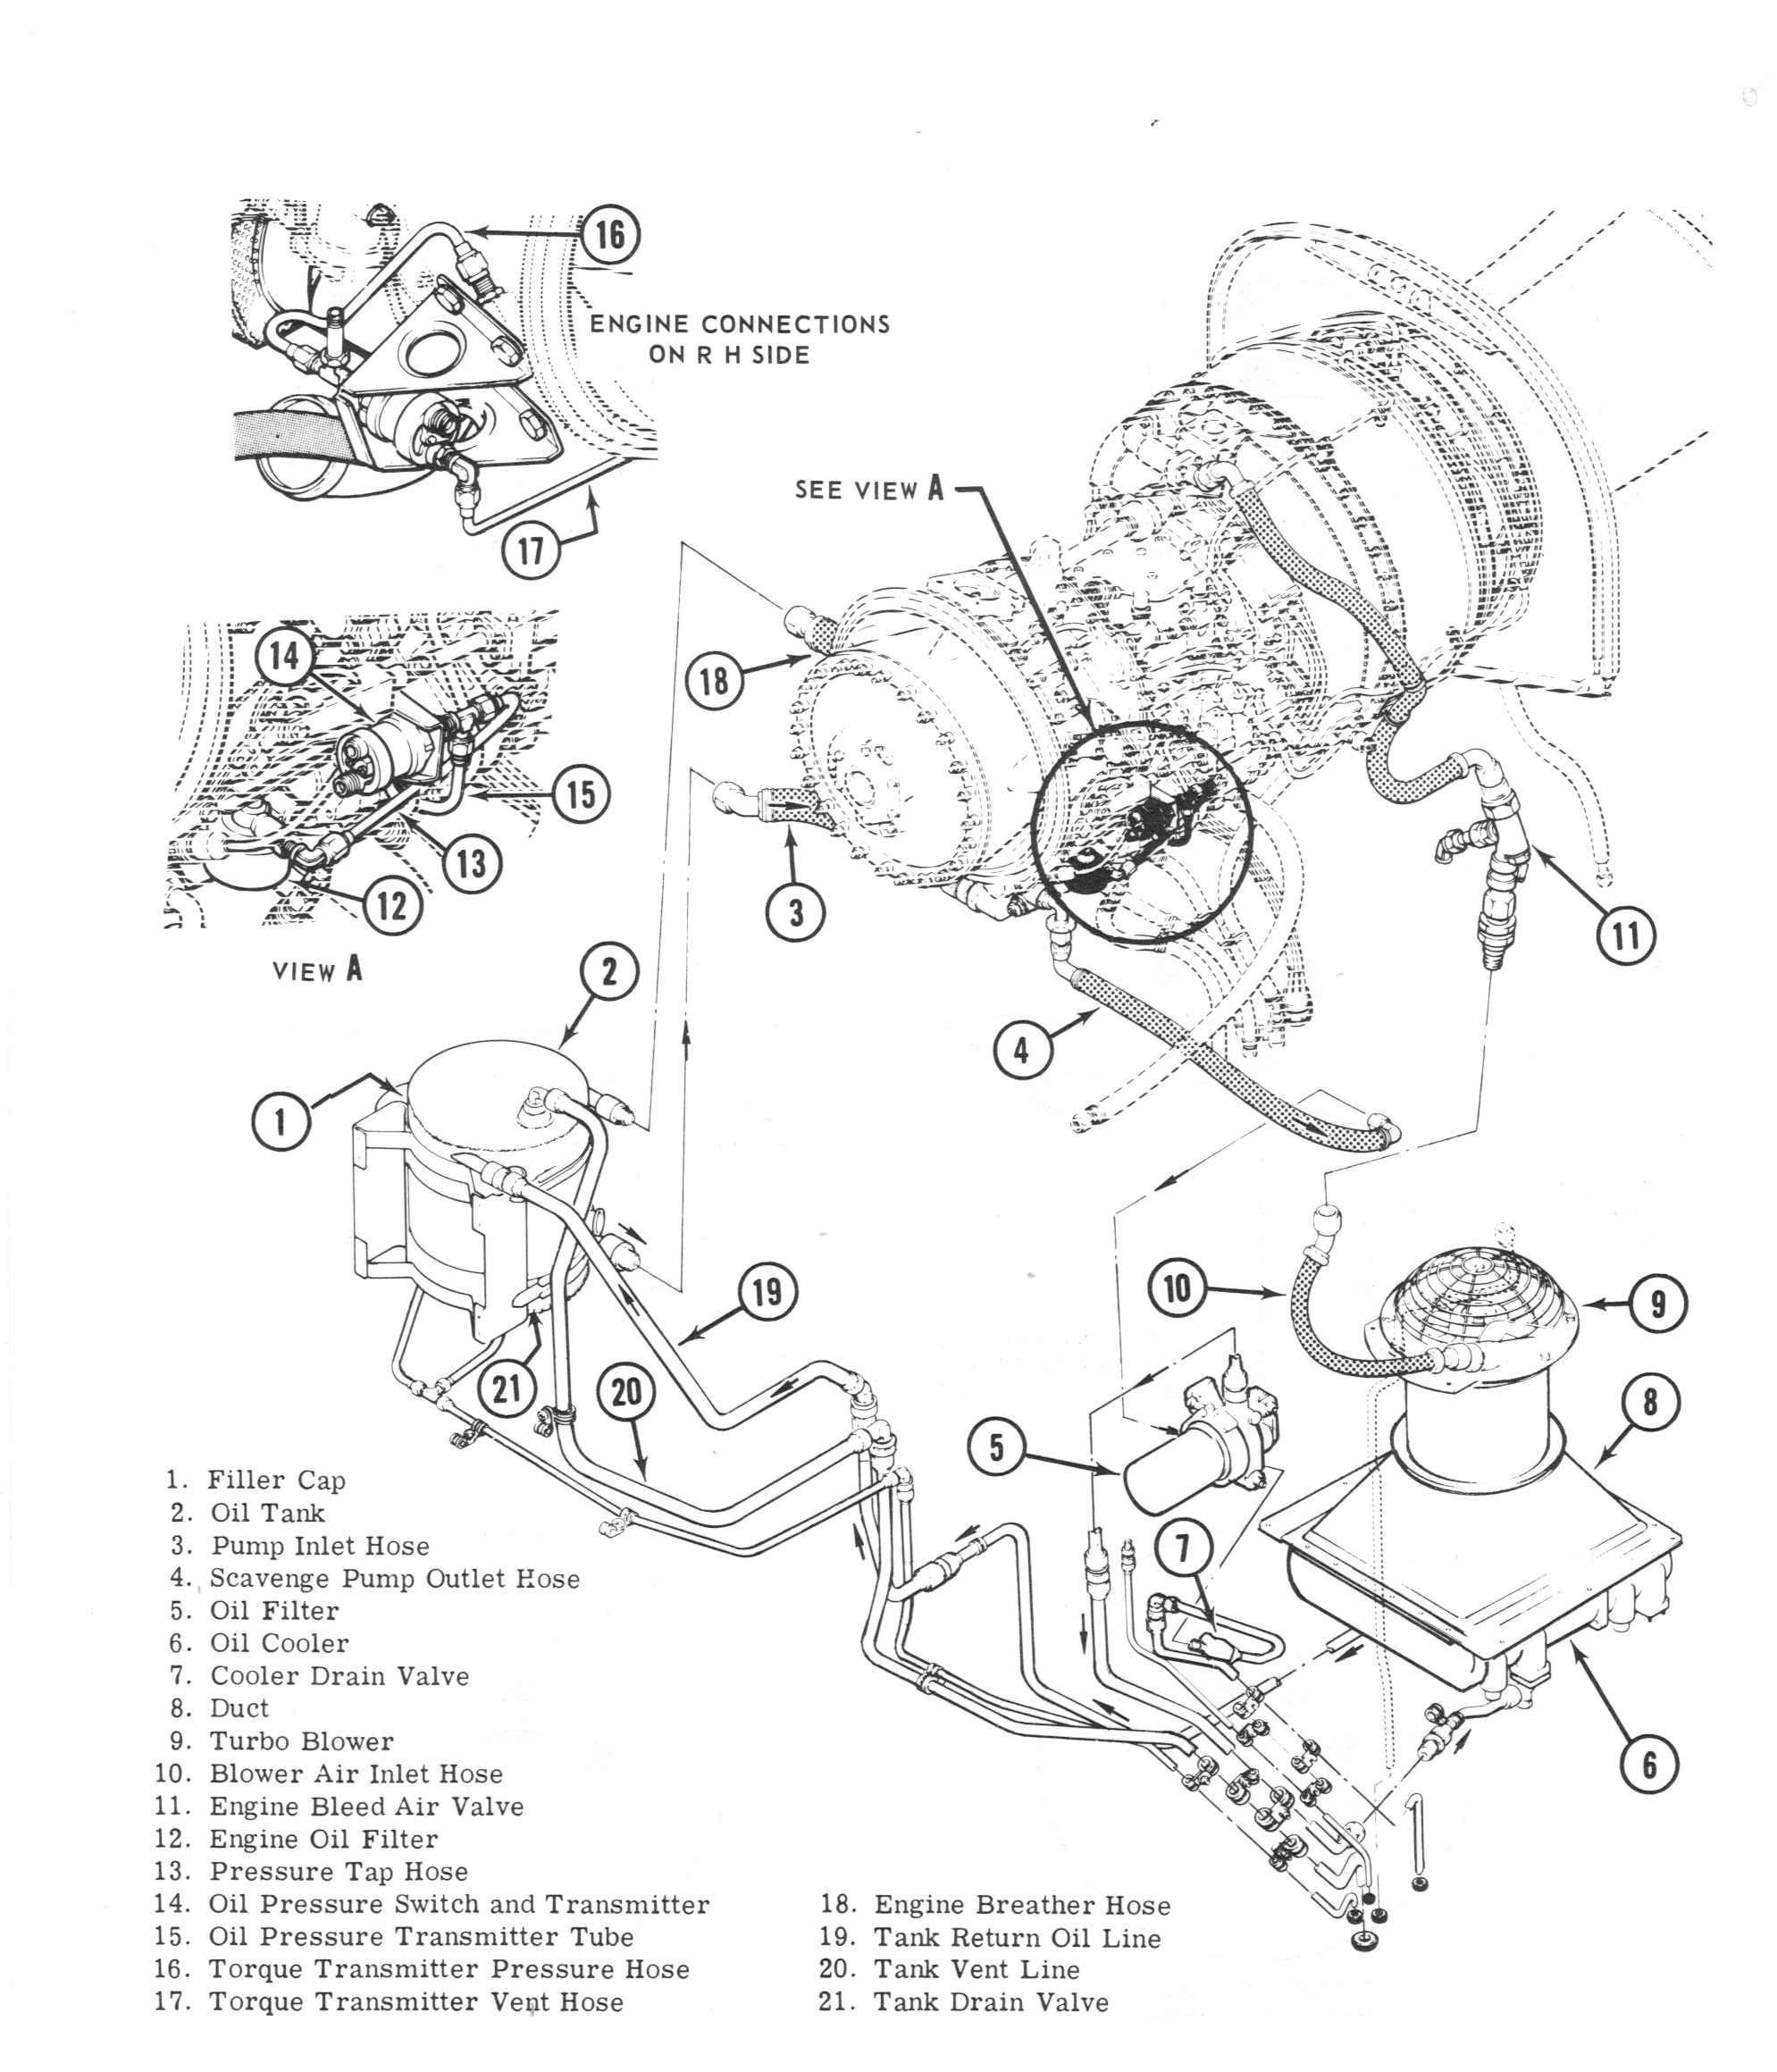 Engine Orientation Diagram, T5313B · Exploded view of helicopter · External  Cargo Suspension Hook · Fire Extinguisher Installation